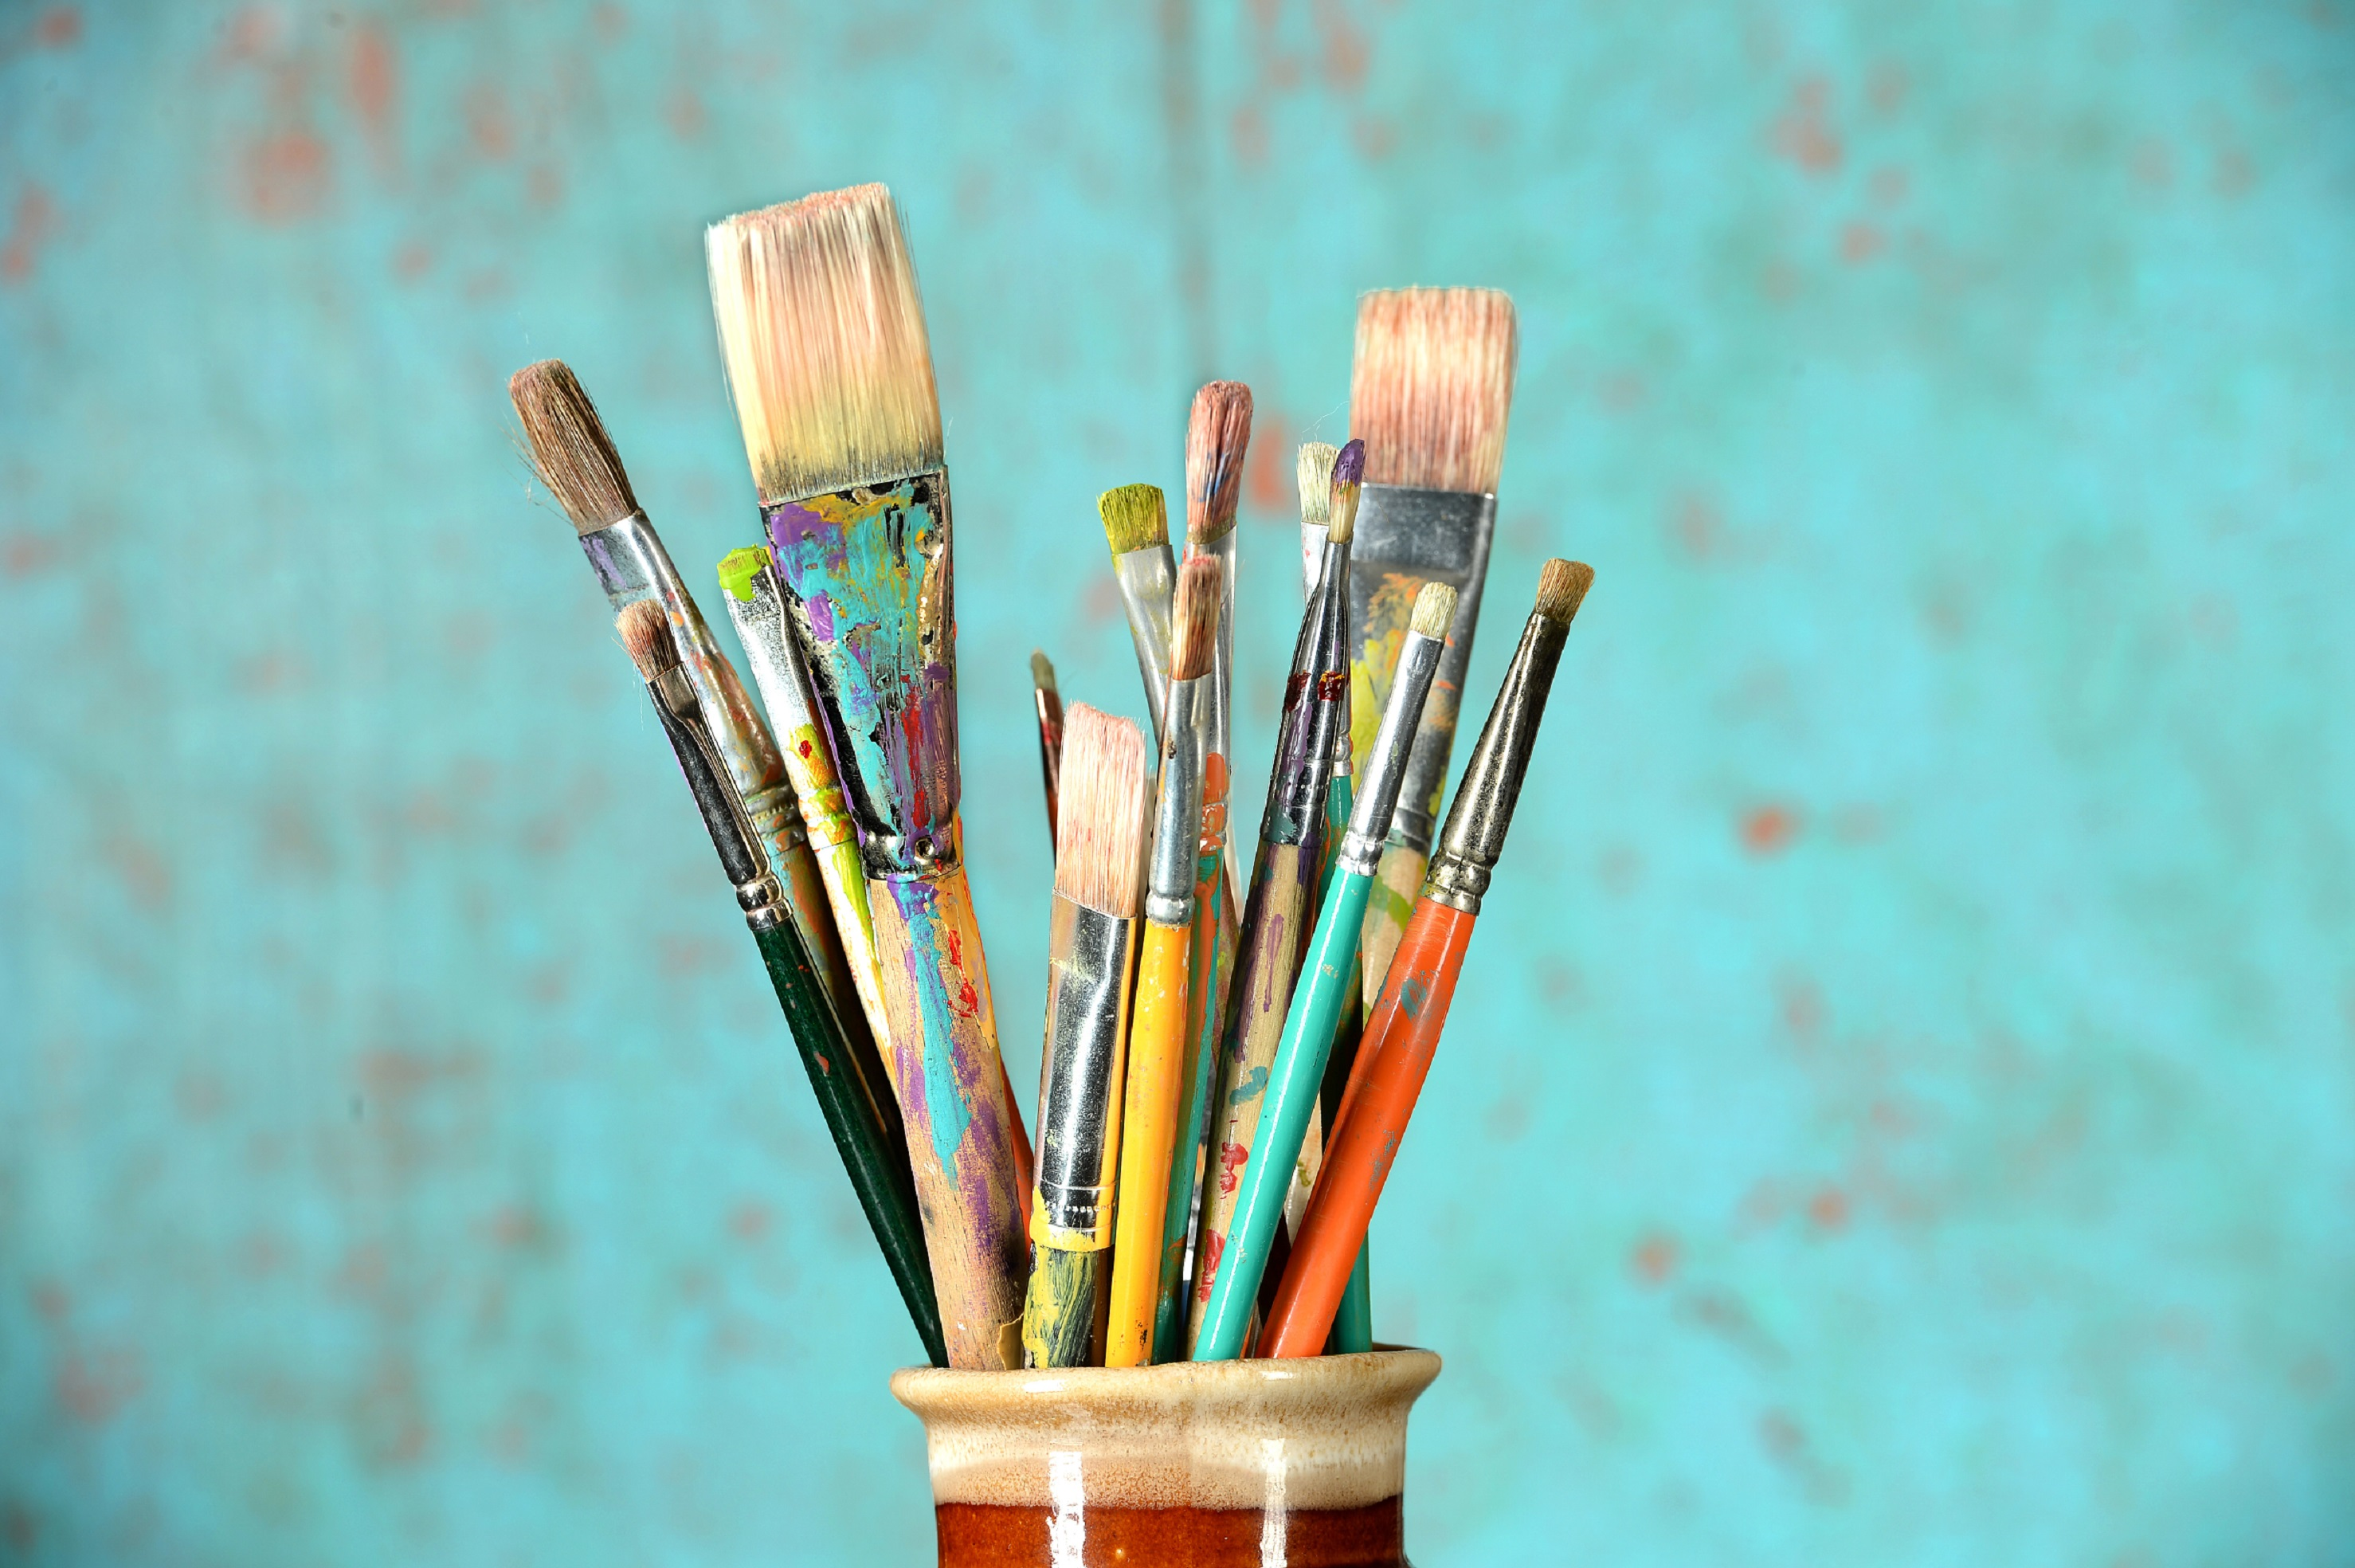 Creative arts therapy for PTSD